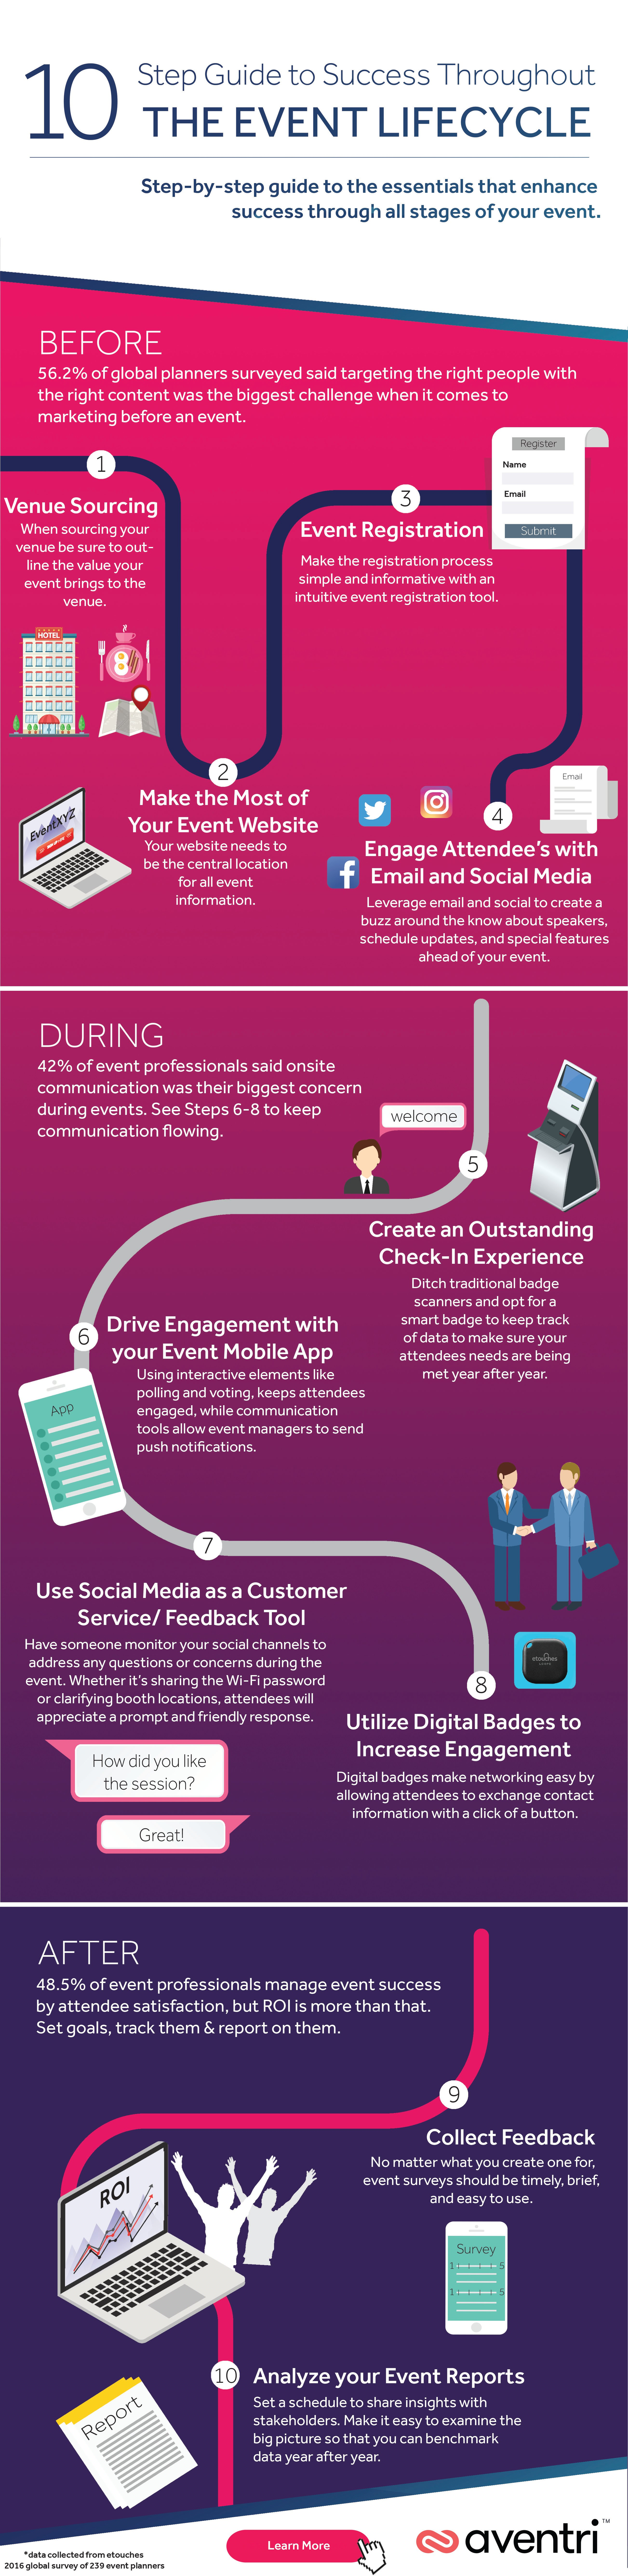 Aventri's 10 Step infographic Guide to Success Throughout the Event Lifecycle